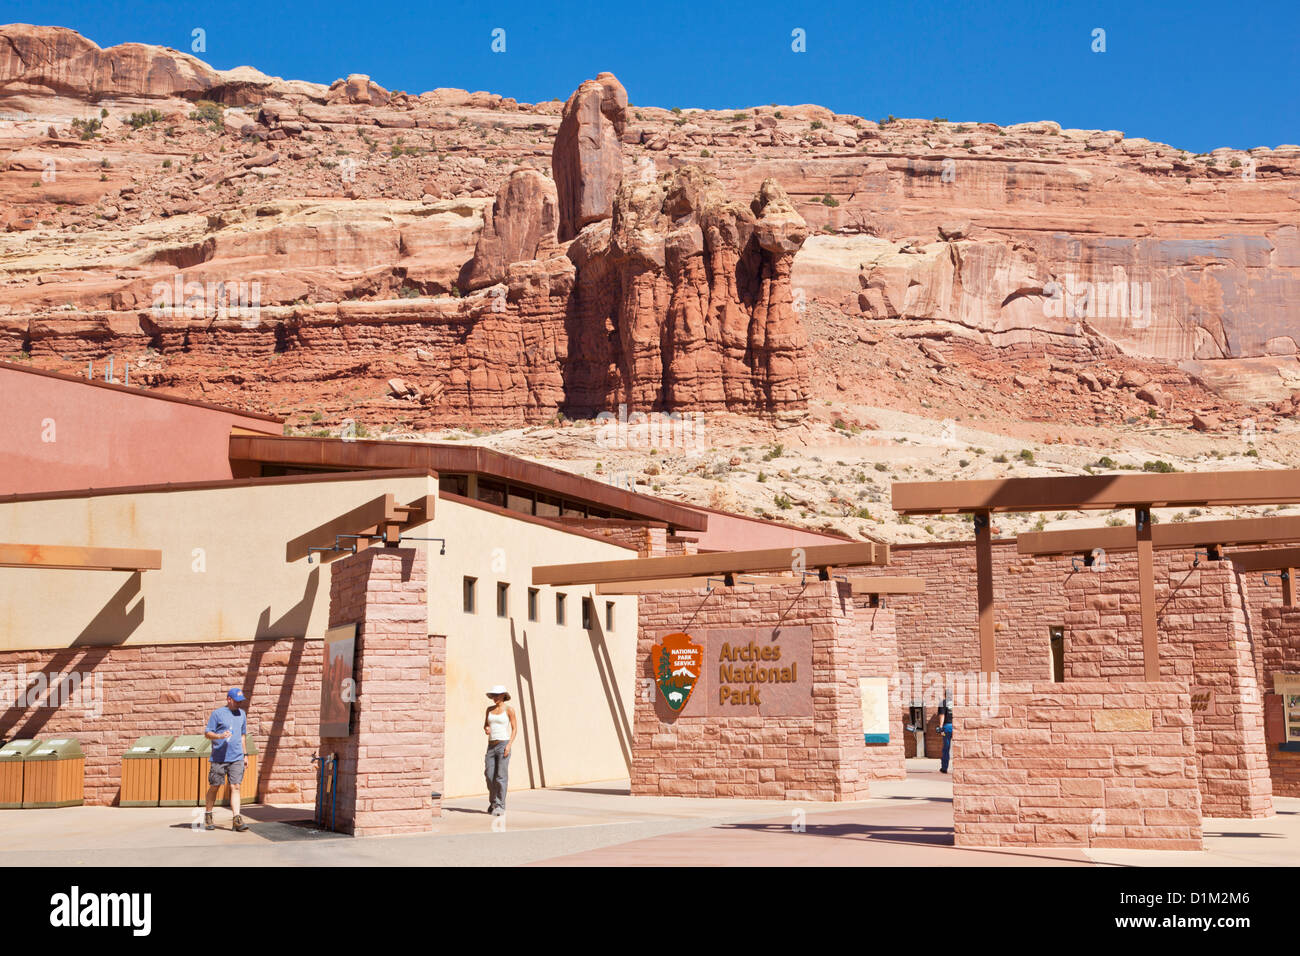 Arches National Park Visitor Center centre Moab Utah USA United States Of America - Stock Image